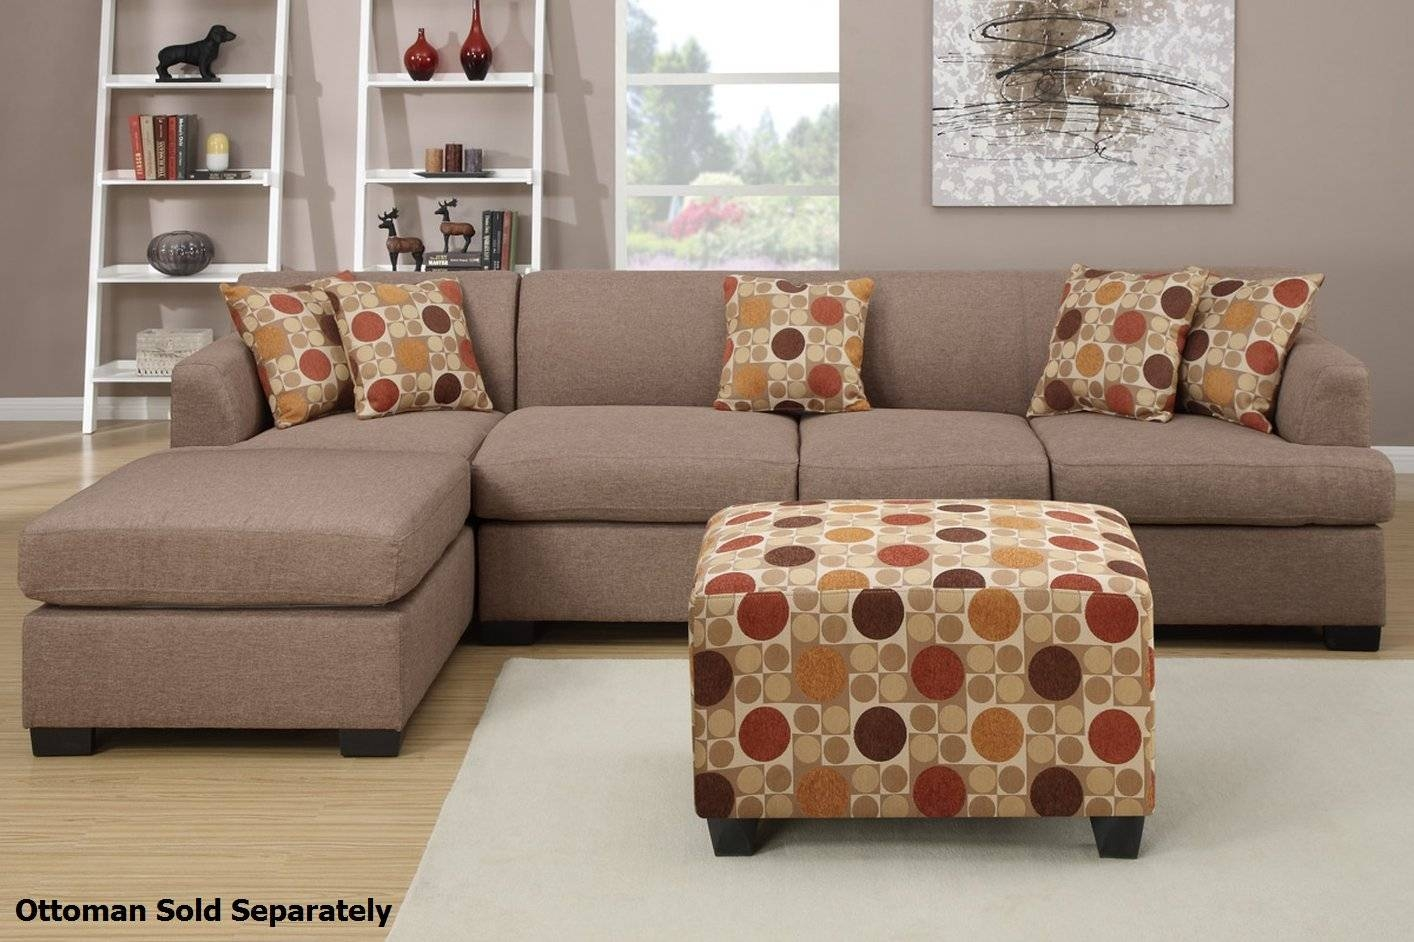 Montreal Iii Beige Fabric Sectional Sofa - Steal-A-Sofa Furniture intended for Fabric Sectional Sofa (Image 22 of 30)